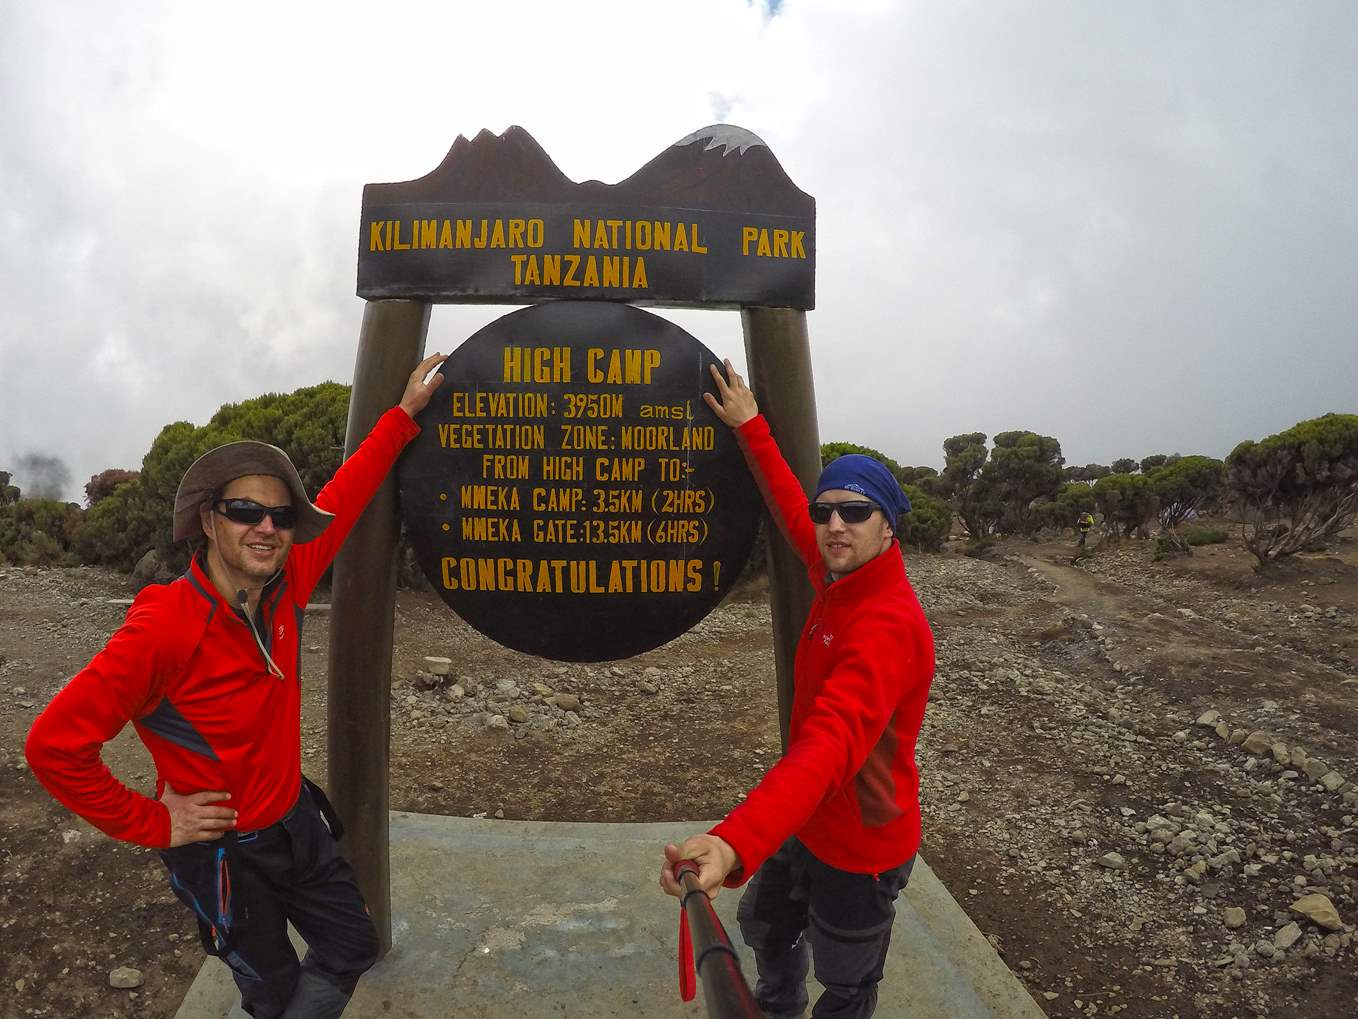 Last night at High Camp on Machame route 6 days